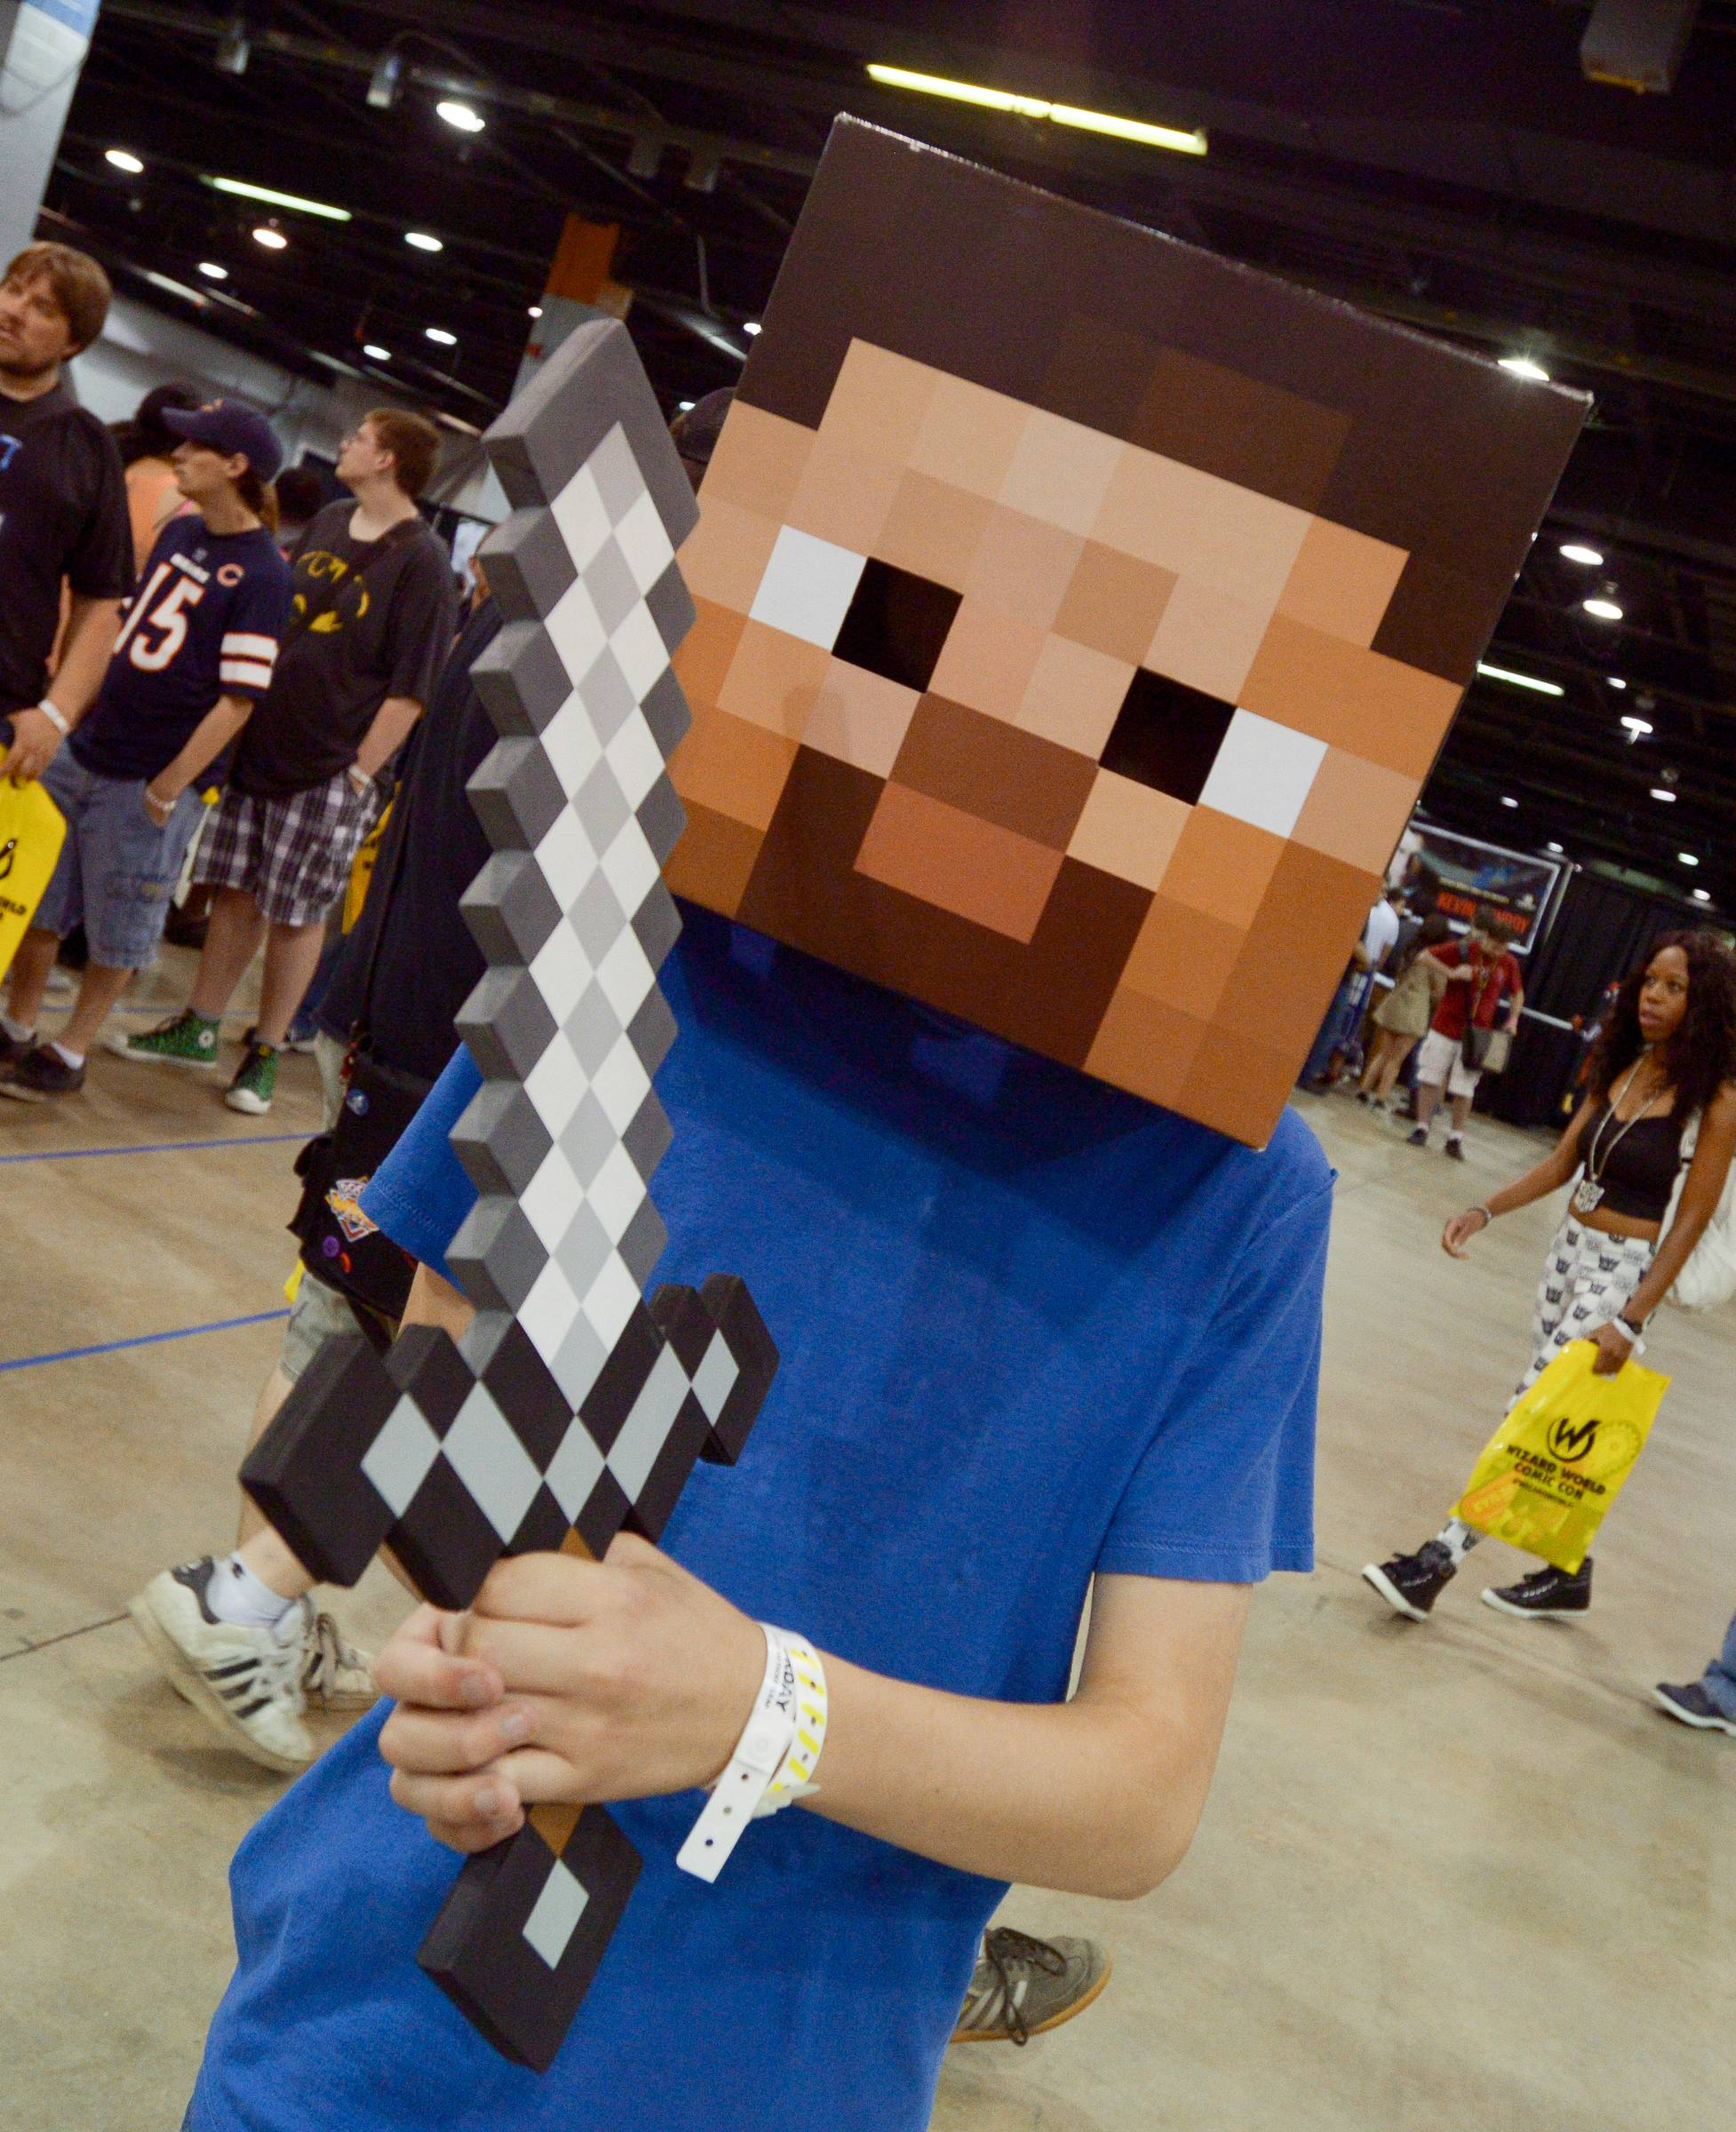 Mark Black/mblack@dailyherald.comThe Donald E. Stephens Convention Center in Rosemont was filled with many fans of Comic Con who came fully dressed as their favorite characters such as this guy dress as a MindCraft character.